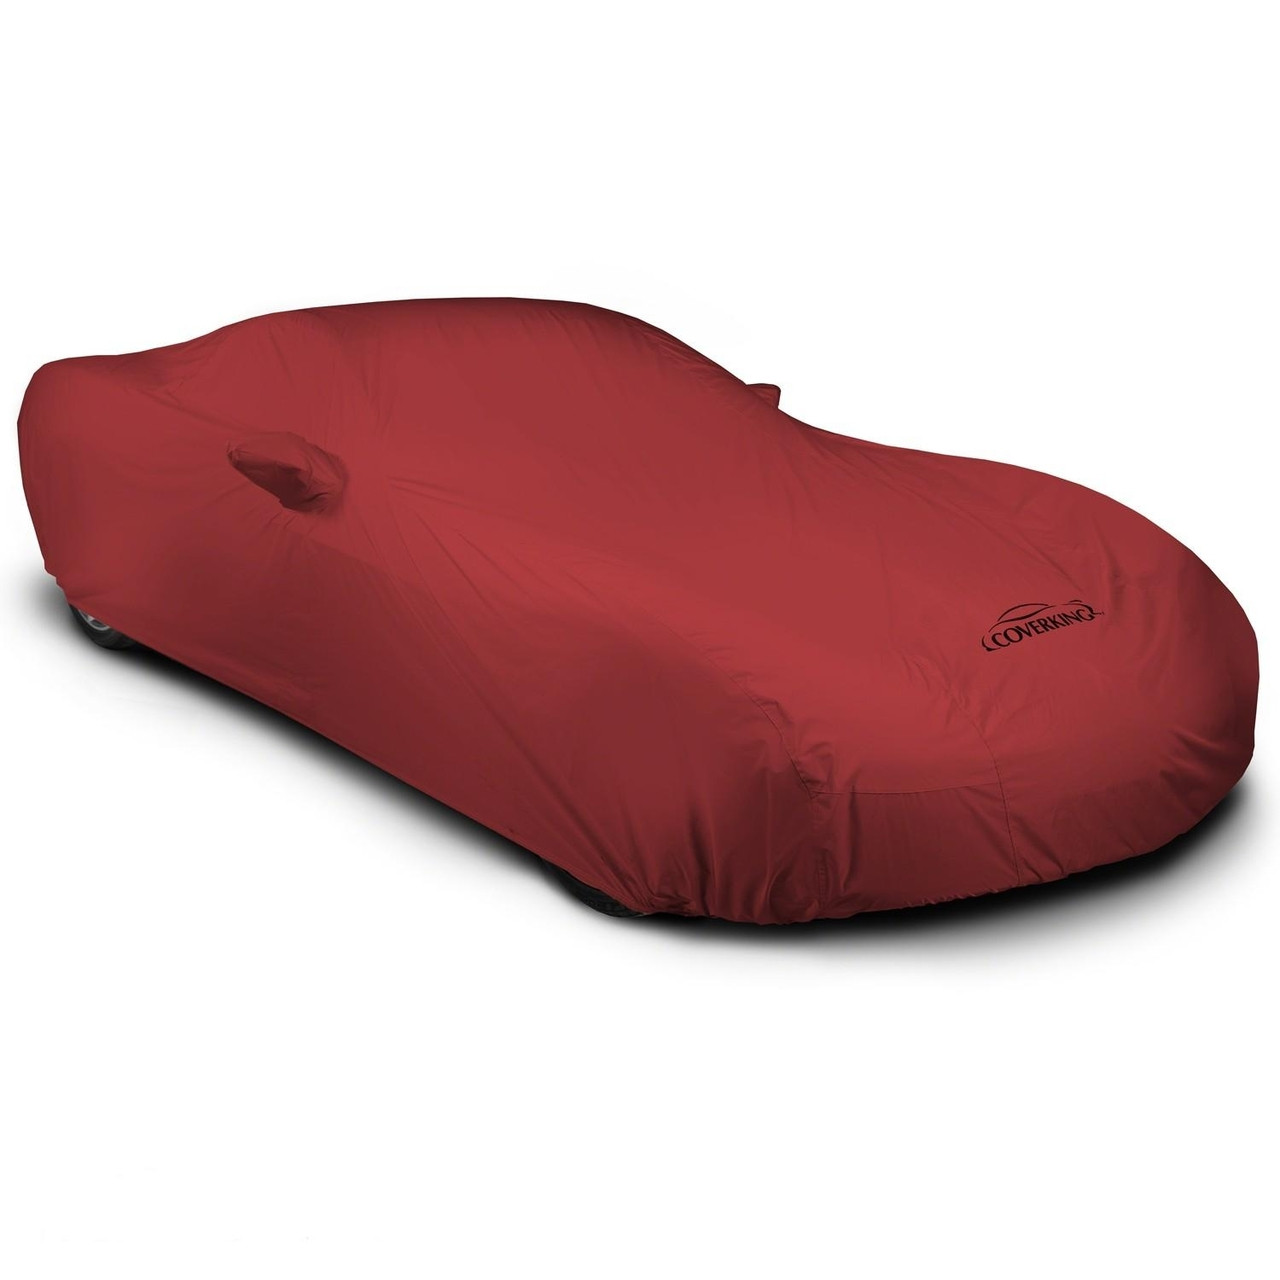 Corvette Outdoor Car Cover red